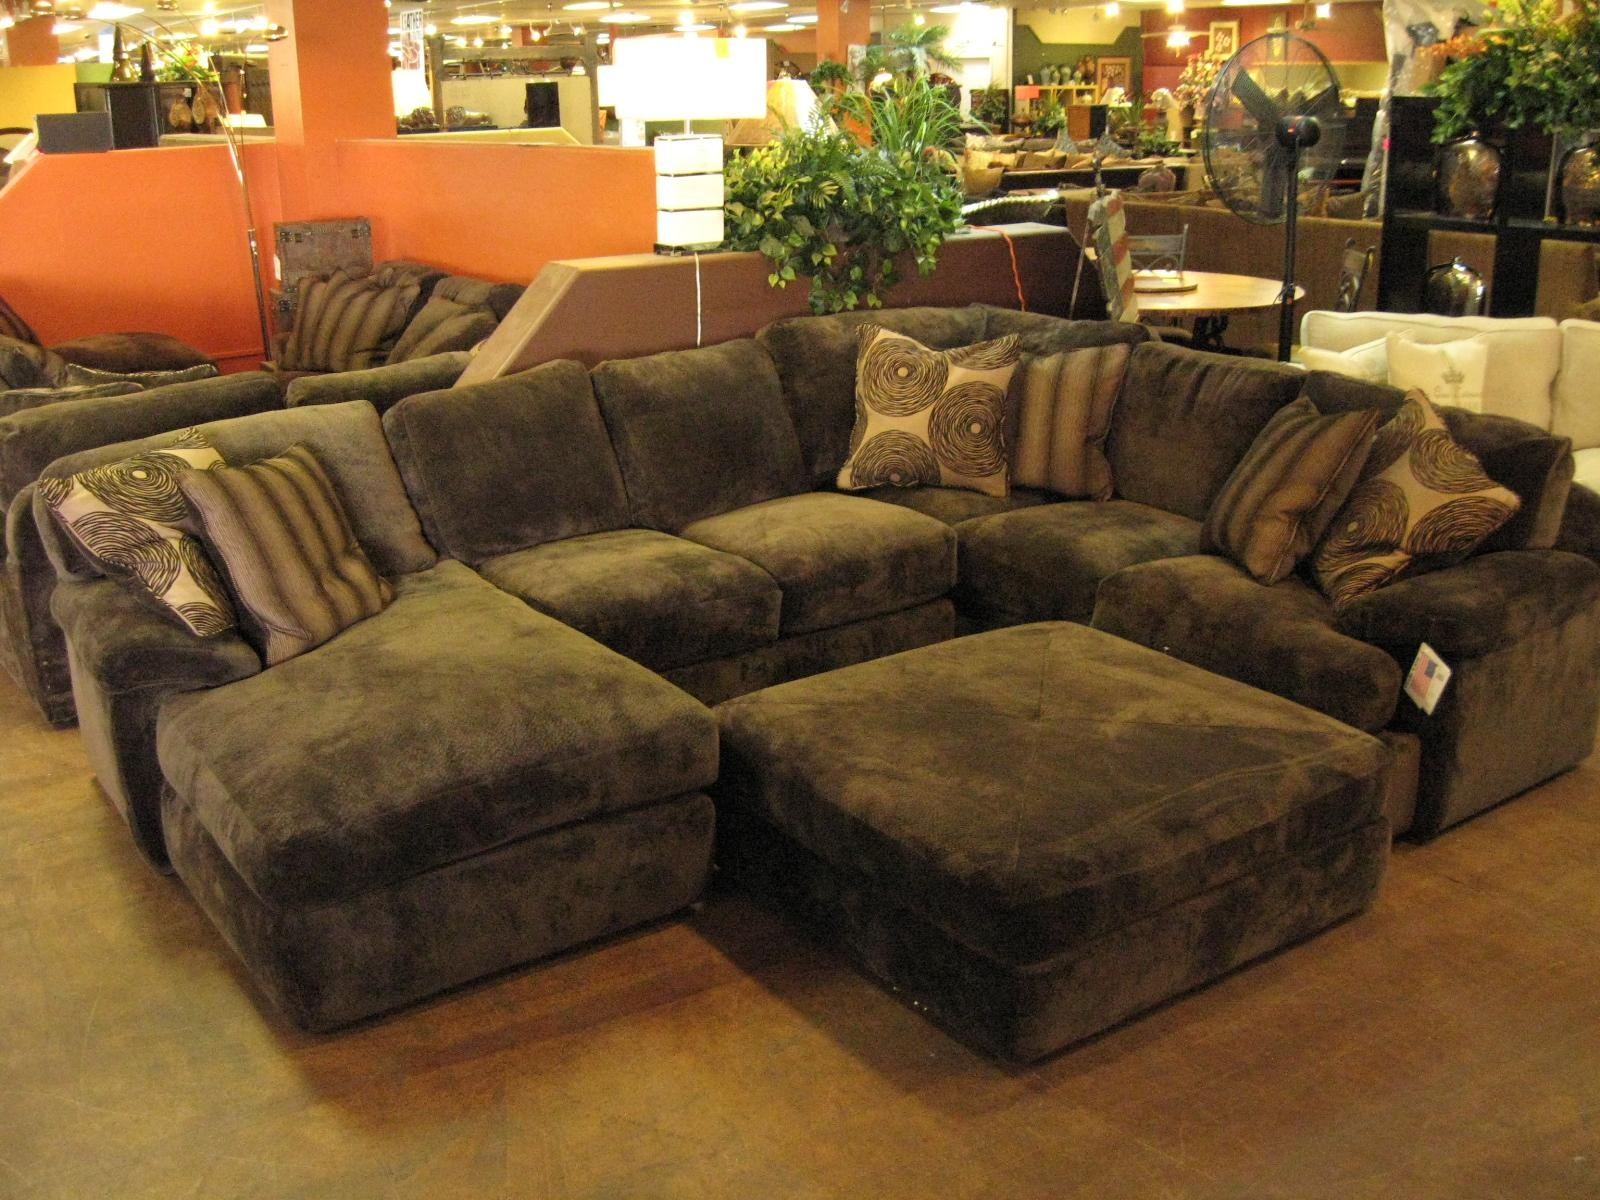 Sofas Center : Wonderful Cheap Rednal Sofa About Remodel Create With Down Filled Sofas And Sectionals (View 14 of 15)